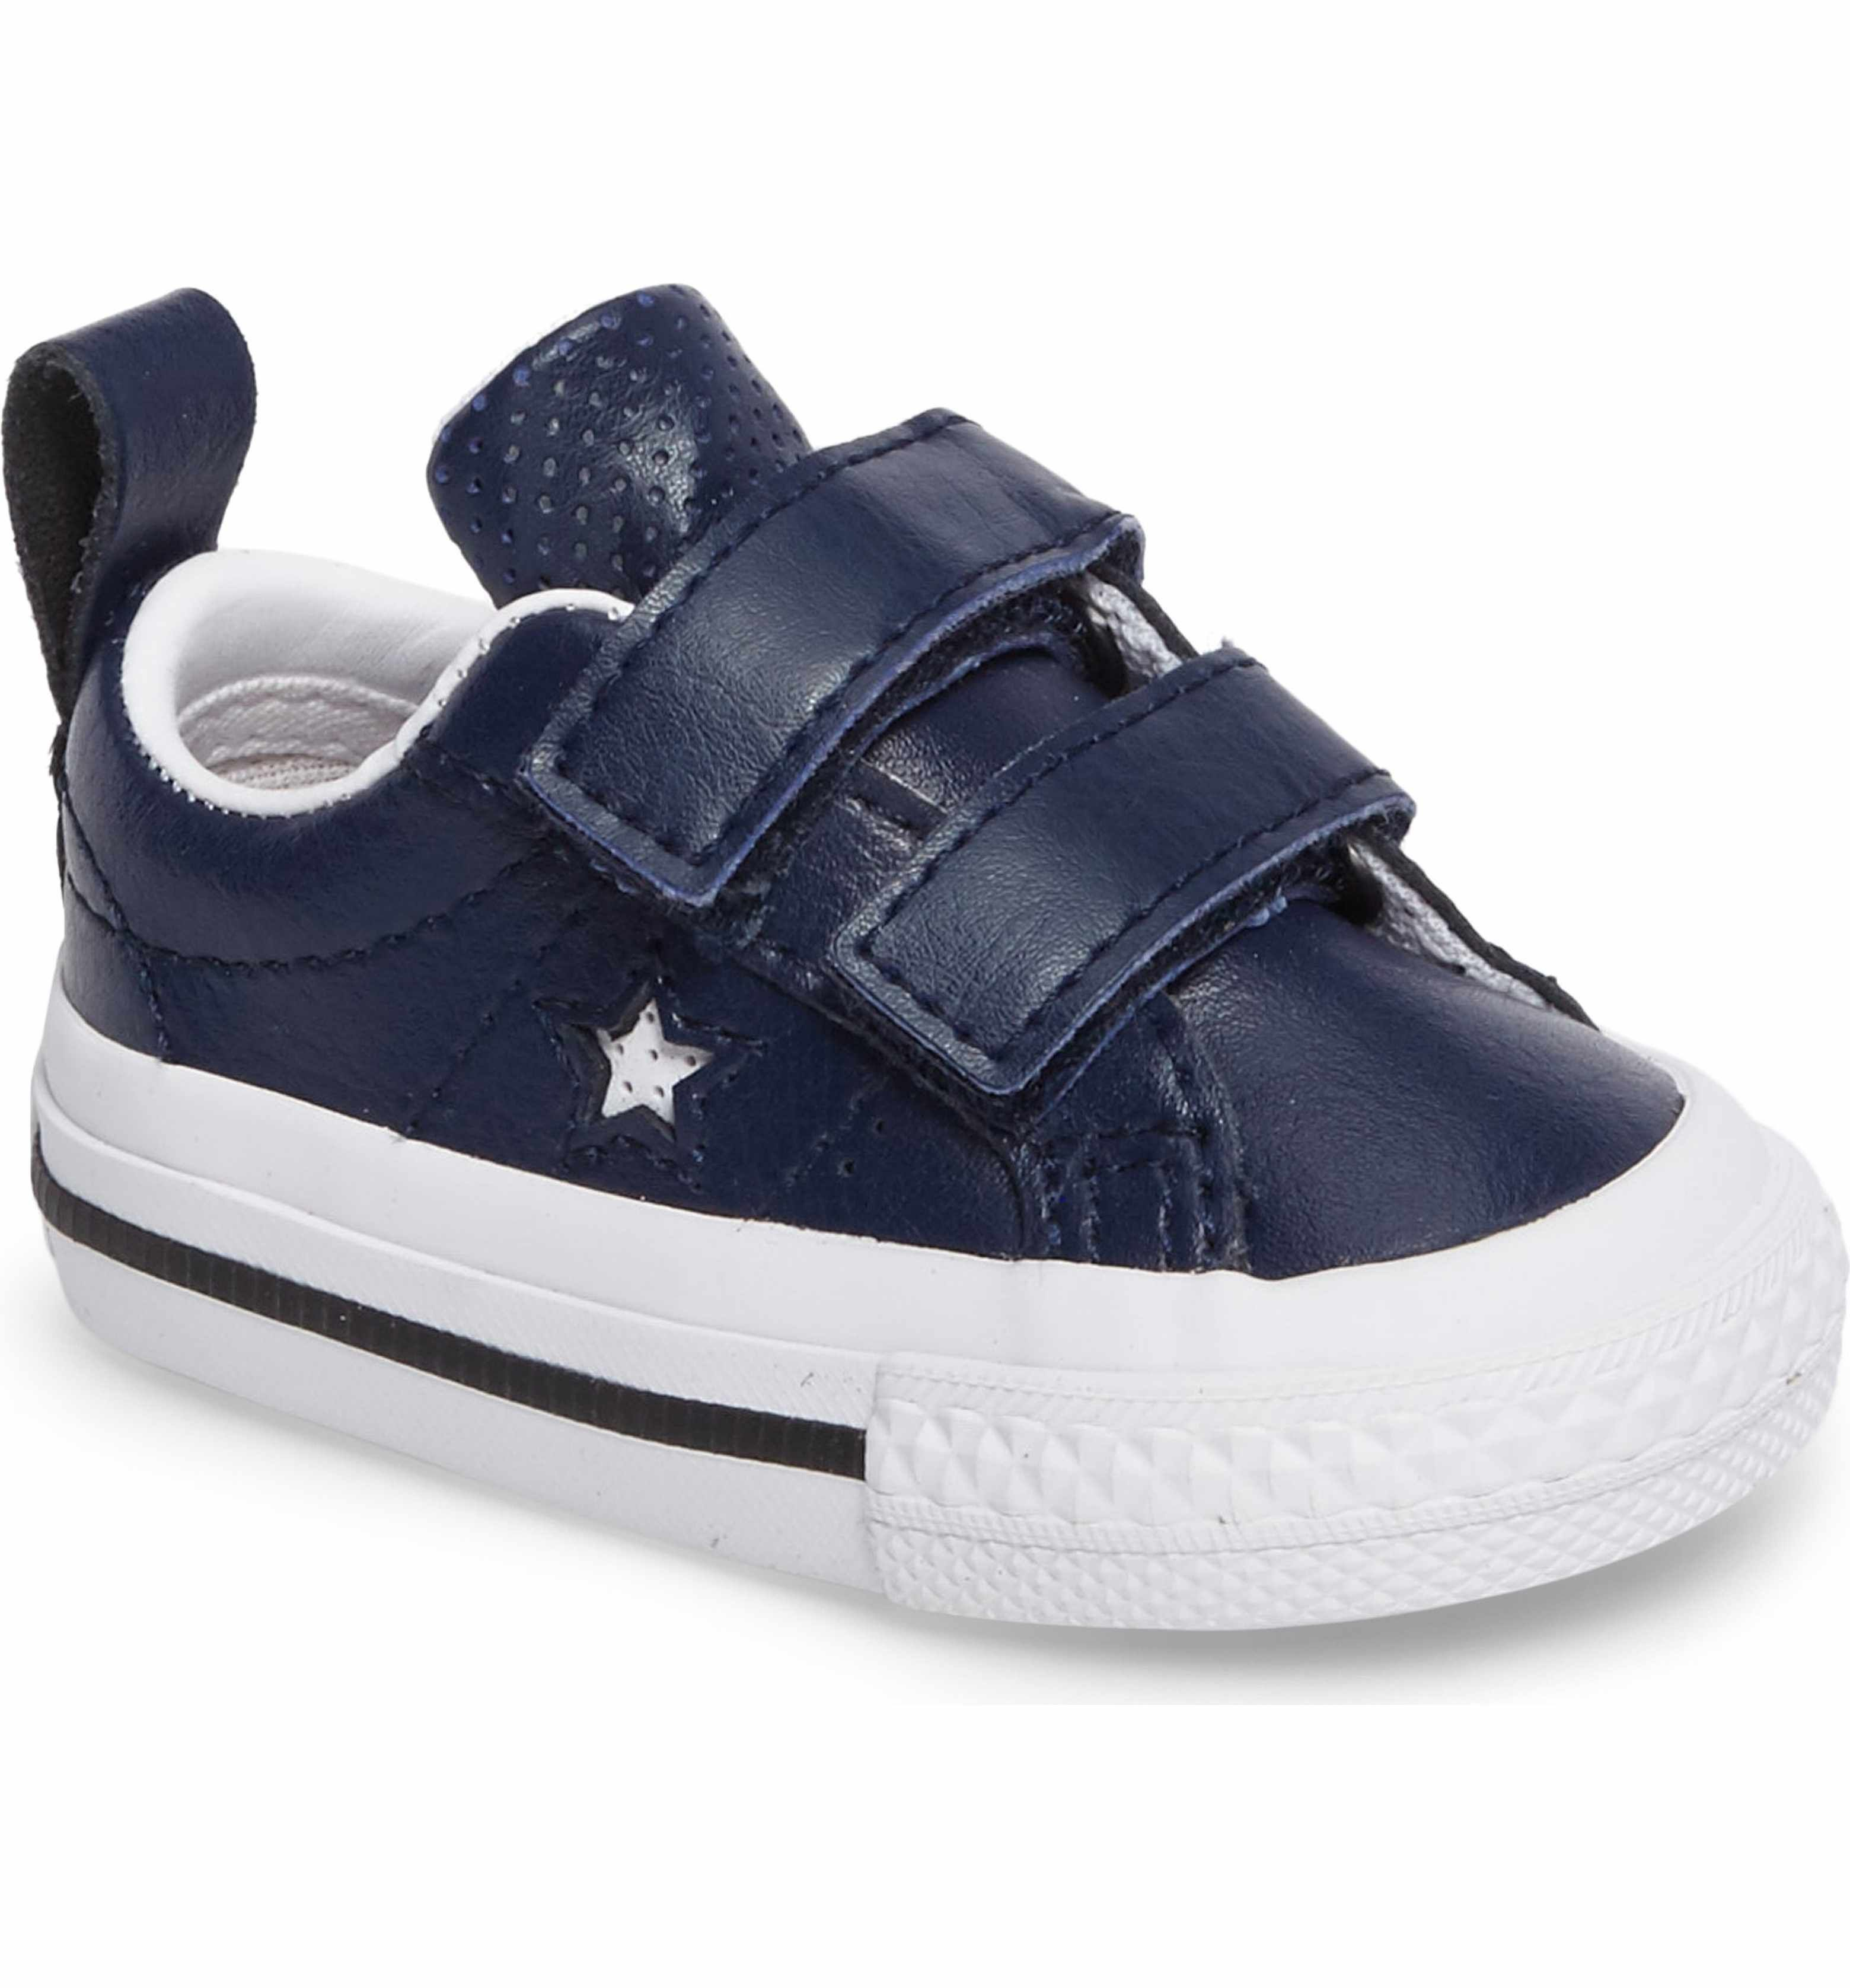 d8a8858a98c Main Image - Converse Chuck Taylor® All Star® One Star Sneaker (Baby ...